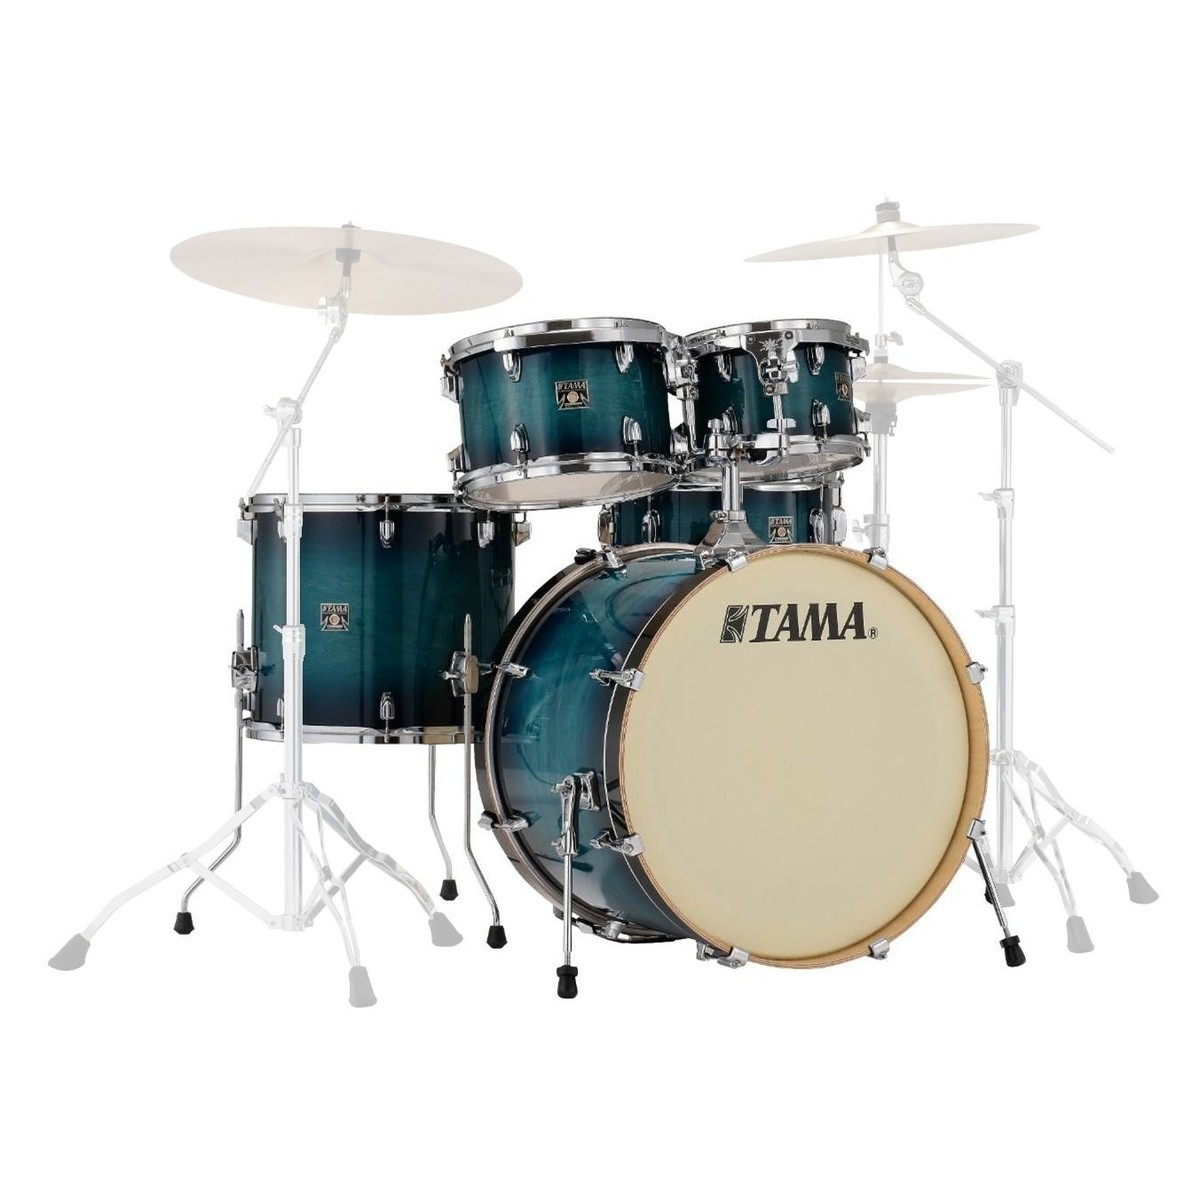 acoustic drum kits tama superstar classic 22 39 39 5 piece shell pack blue lacquer burst. Black Bedroom Furniture Sets. Home Design Ideas